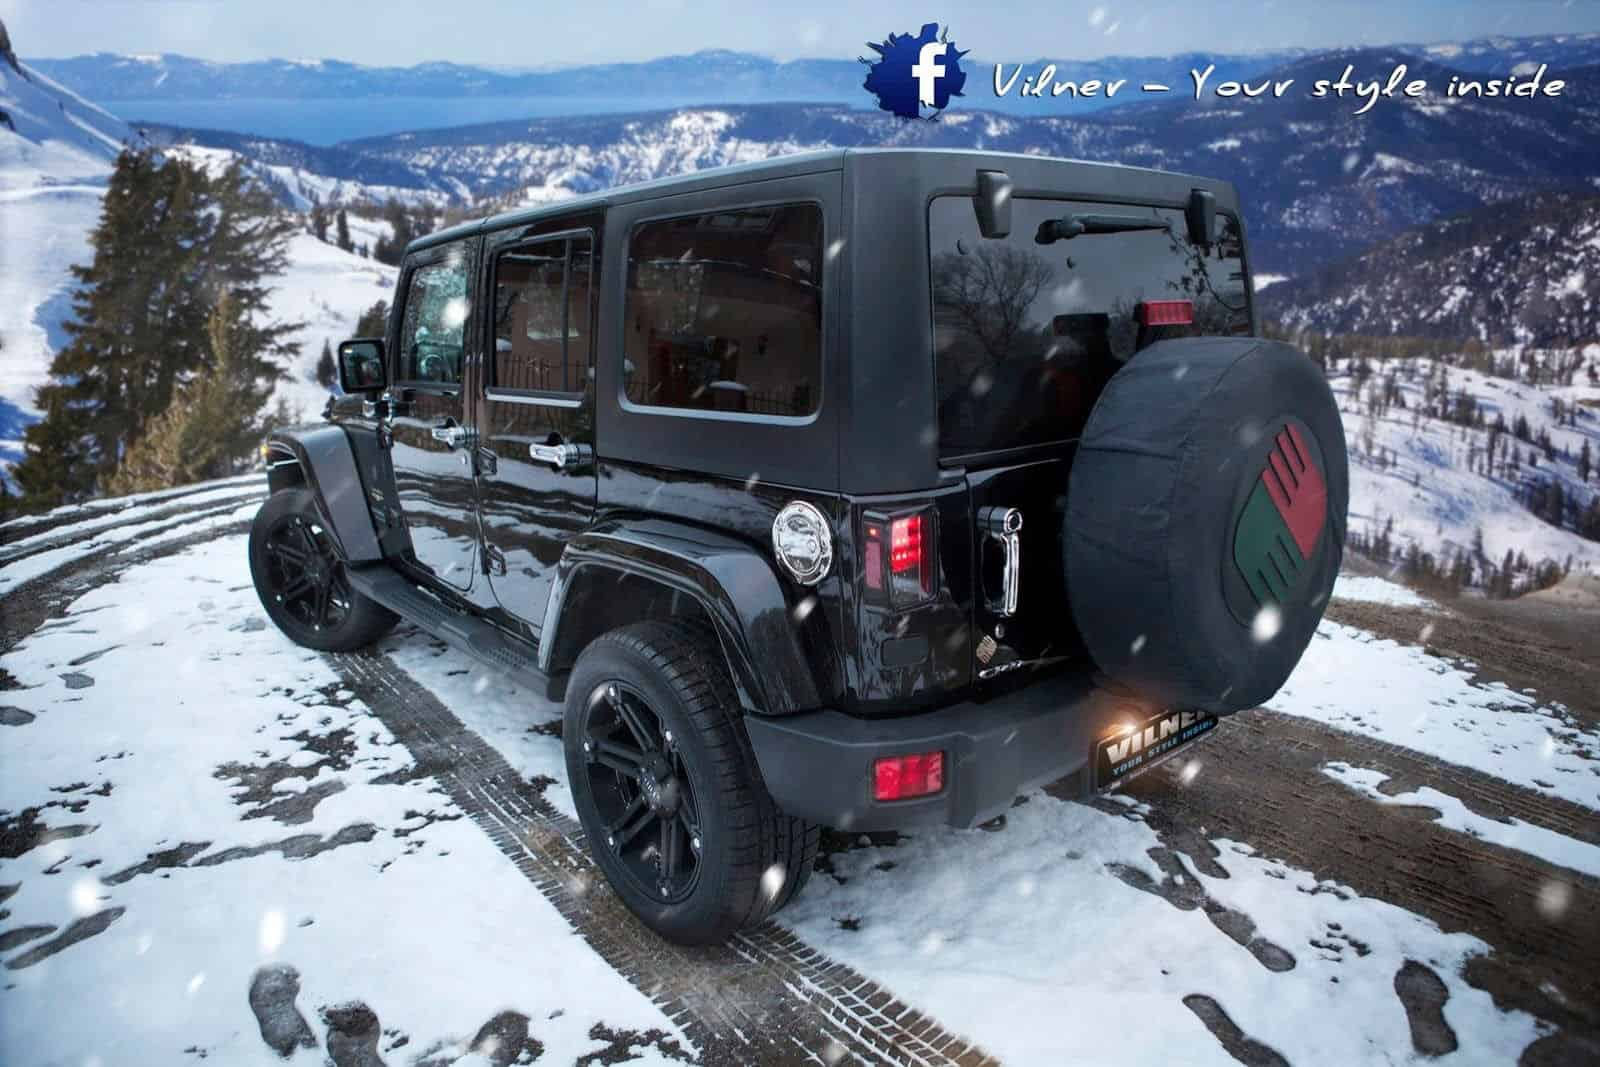 Vilner Tuned Jeep Wrangler Unlimited Sahara Unfinished Man Jk Leather Seats The Interior Is Where Most Upgrades Are Found Comes With Red White Stitching And Black On Door